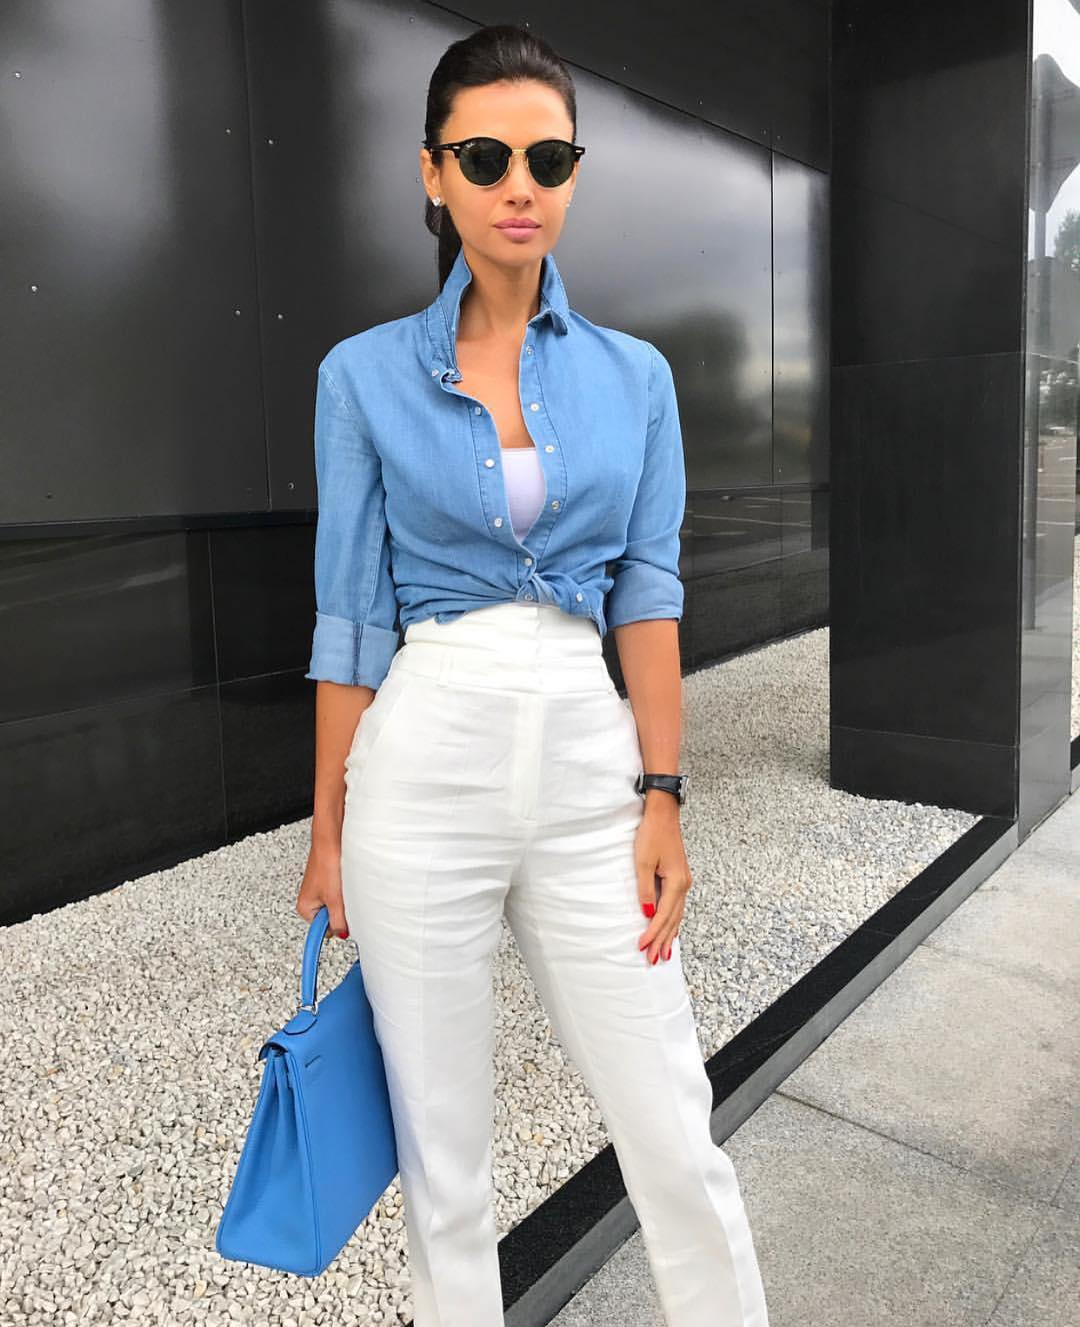 Denim Shirt And White Separates For Summer Office Hours 2020